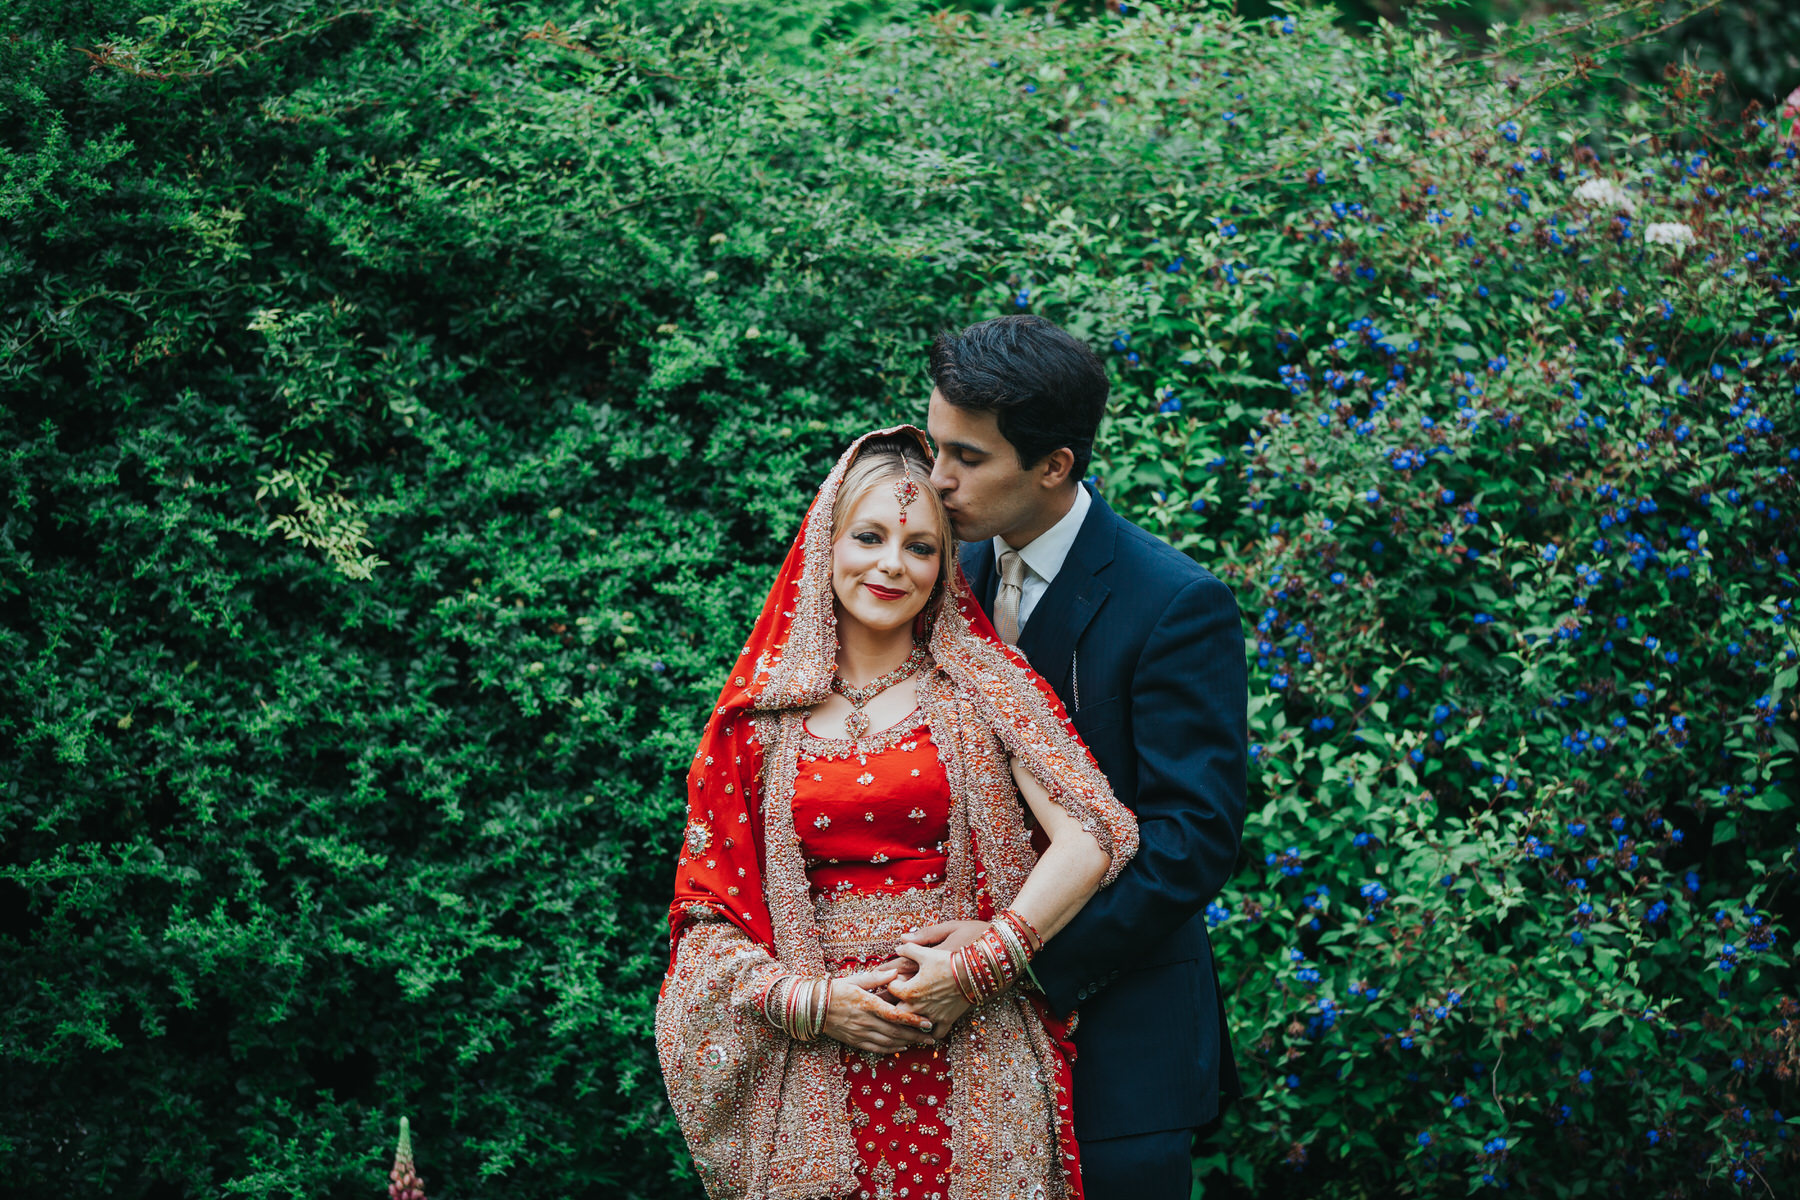 49-Anglo-Asian-London-Wedding-Middle-temple-groom-bride-red-sari-blue-flowers.jpg